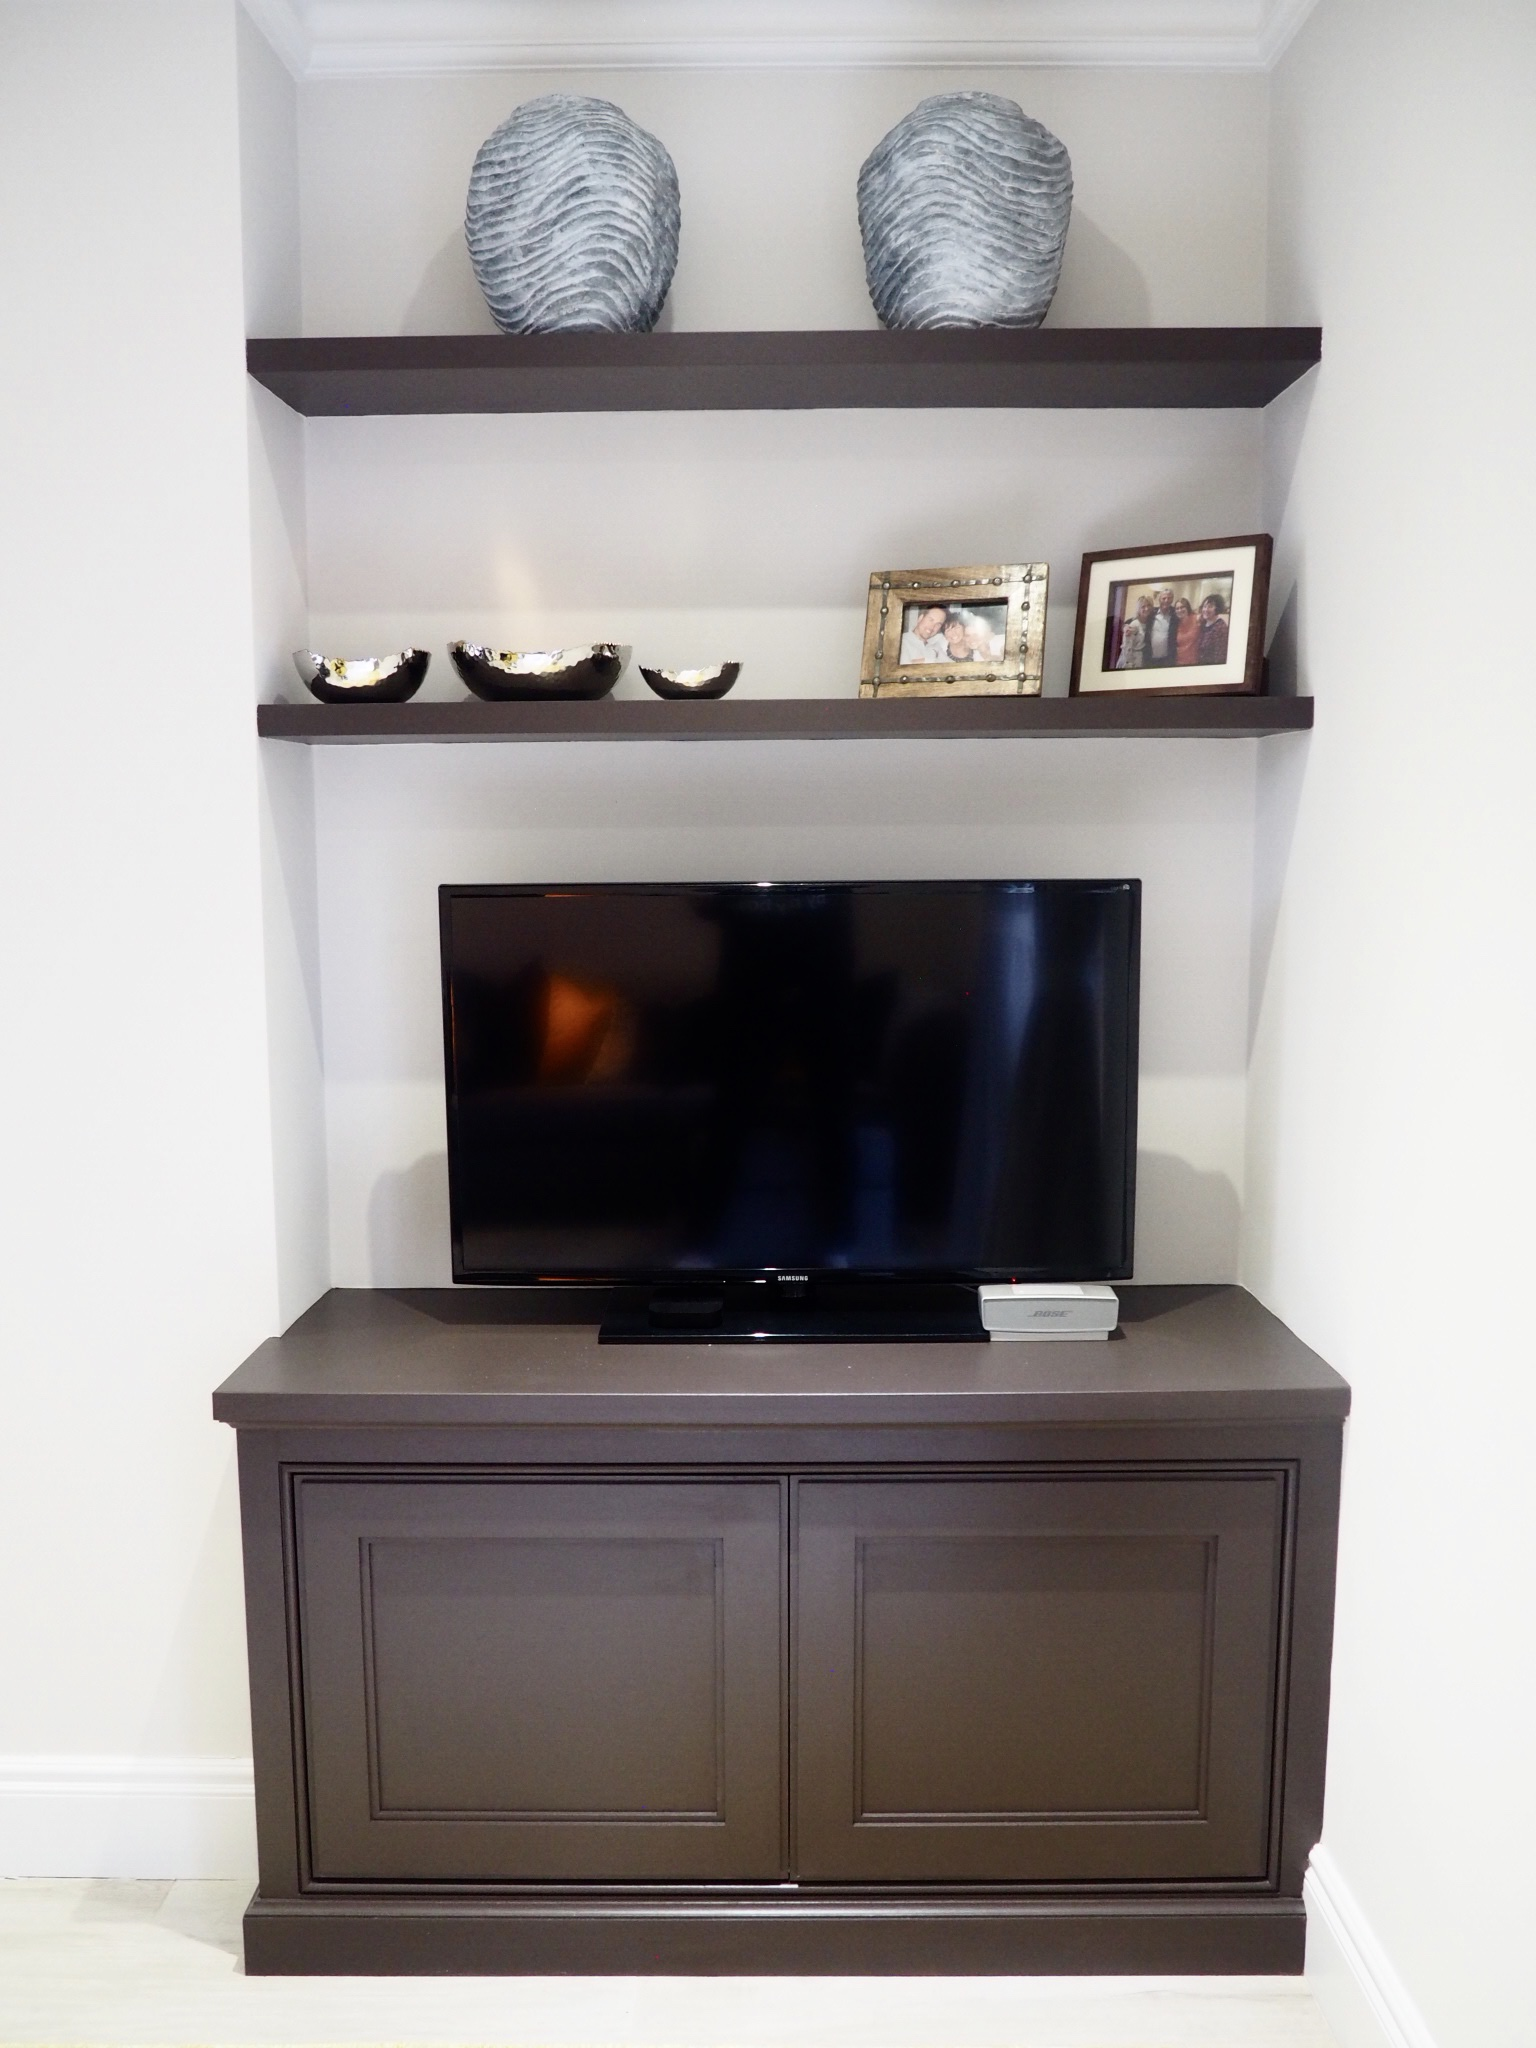 Bespoke media unit with two shelves and silver and copper bowls on the first shelf, and two wavy grey vases on the top shelf